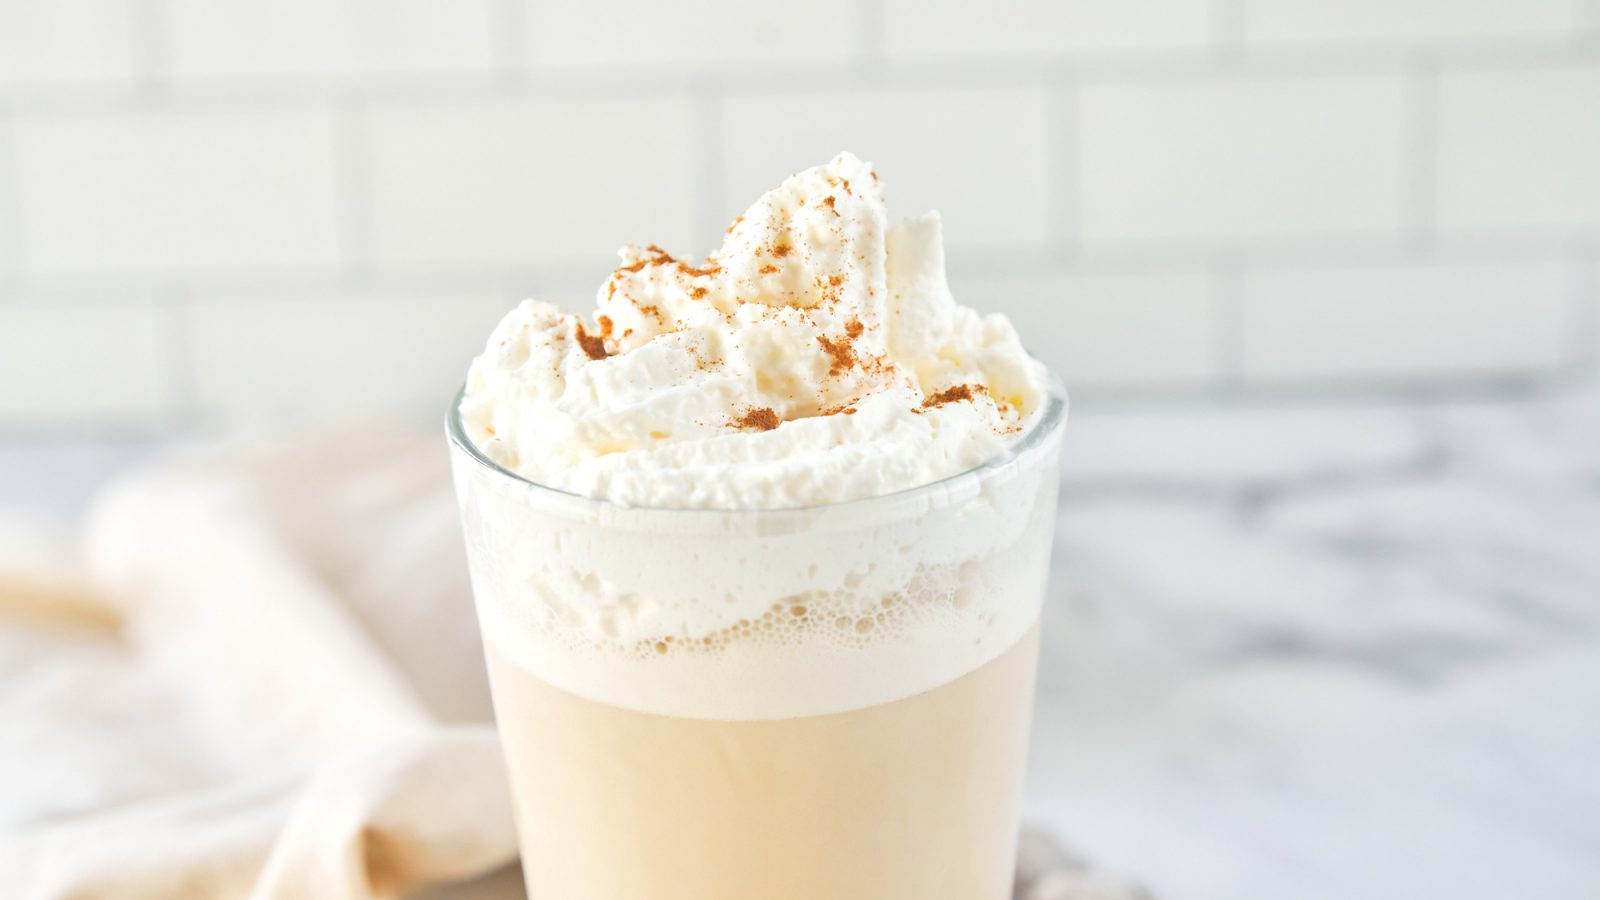 vegan chai frappuccino that is a Starbucks copycat recipe